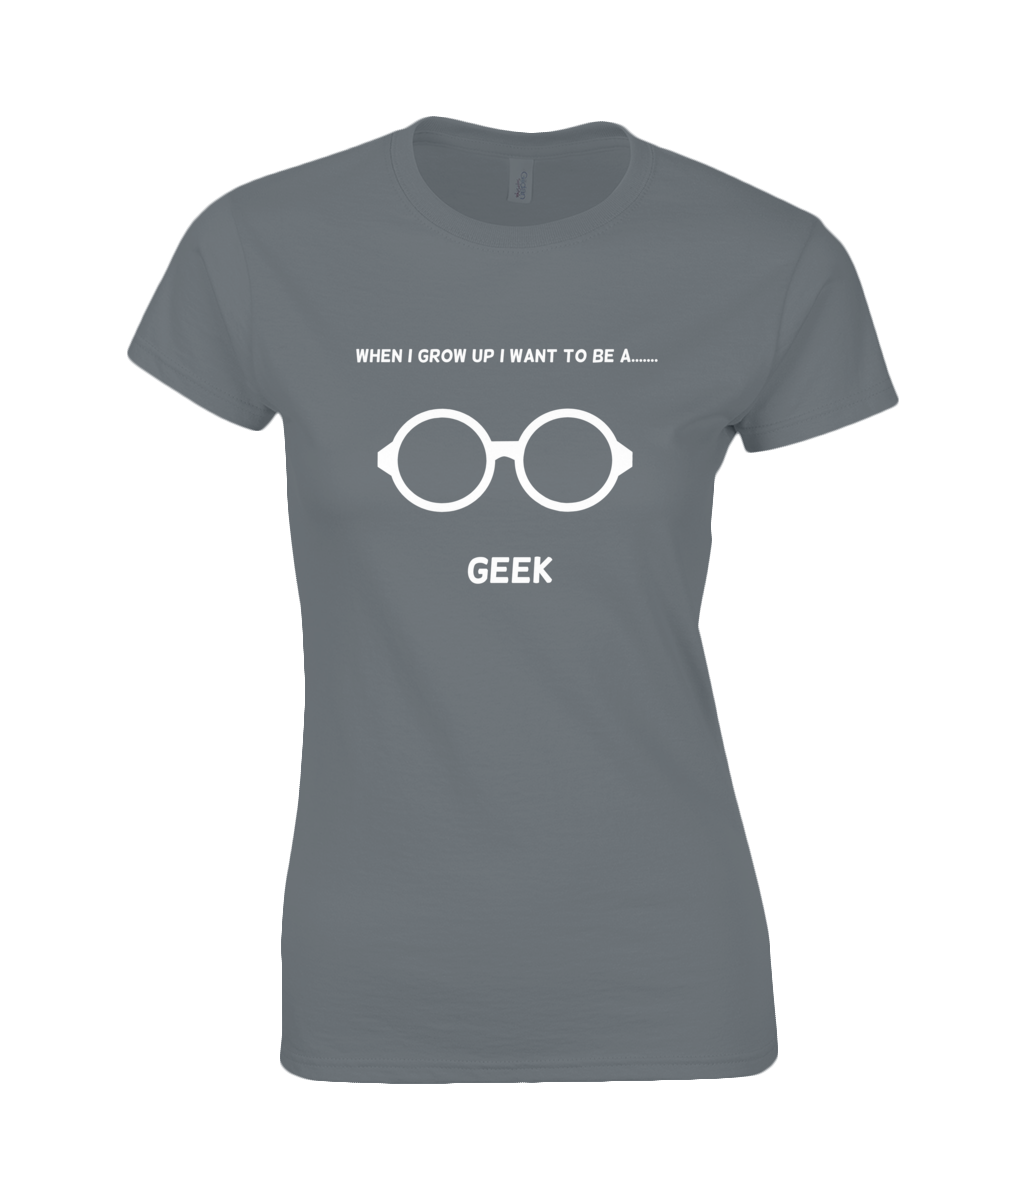 When I Grow Up I Want To Be A Geek - women's t-shirt